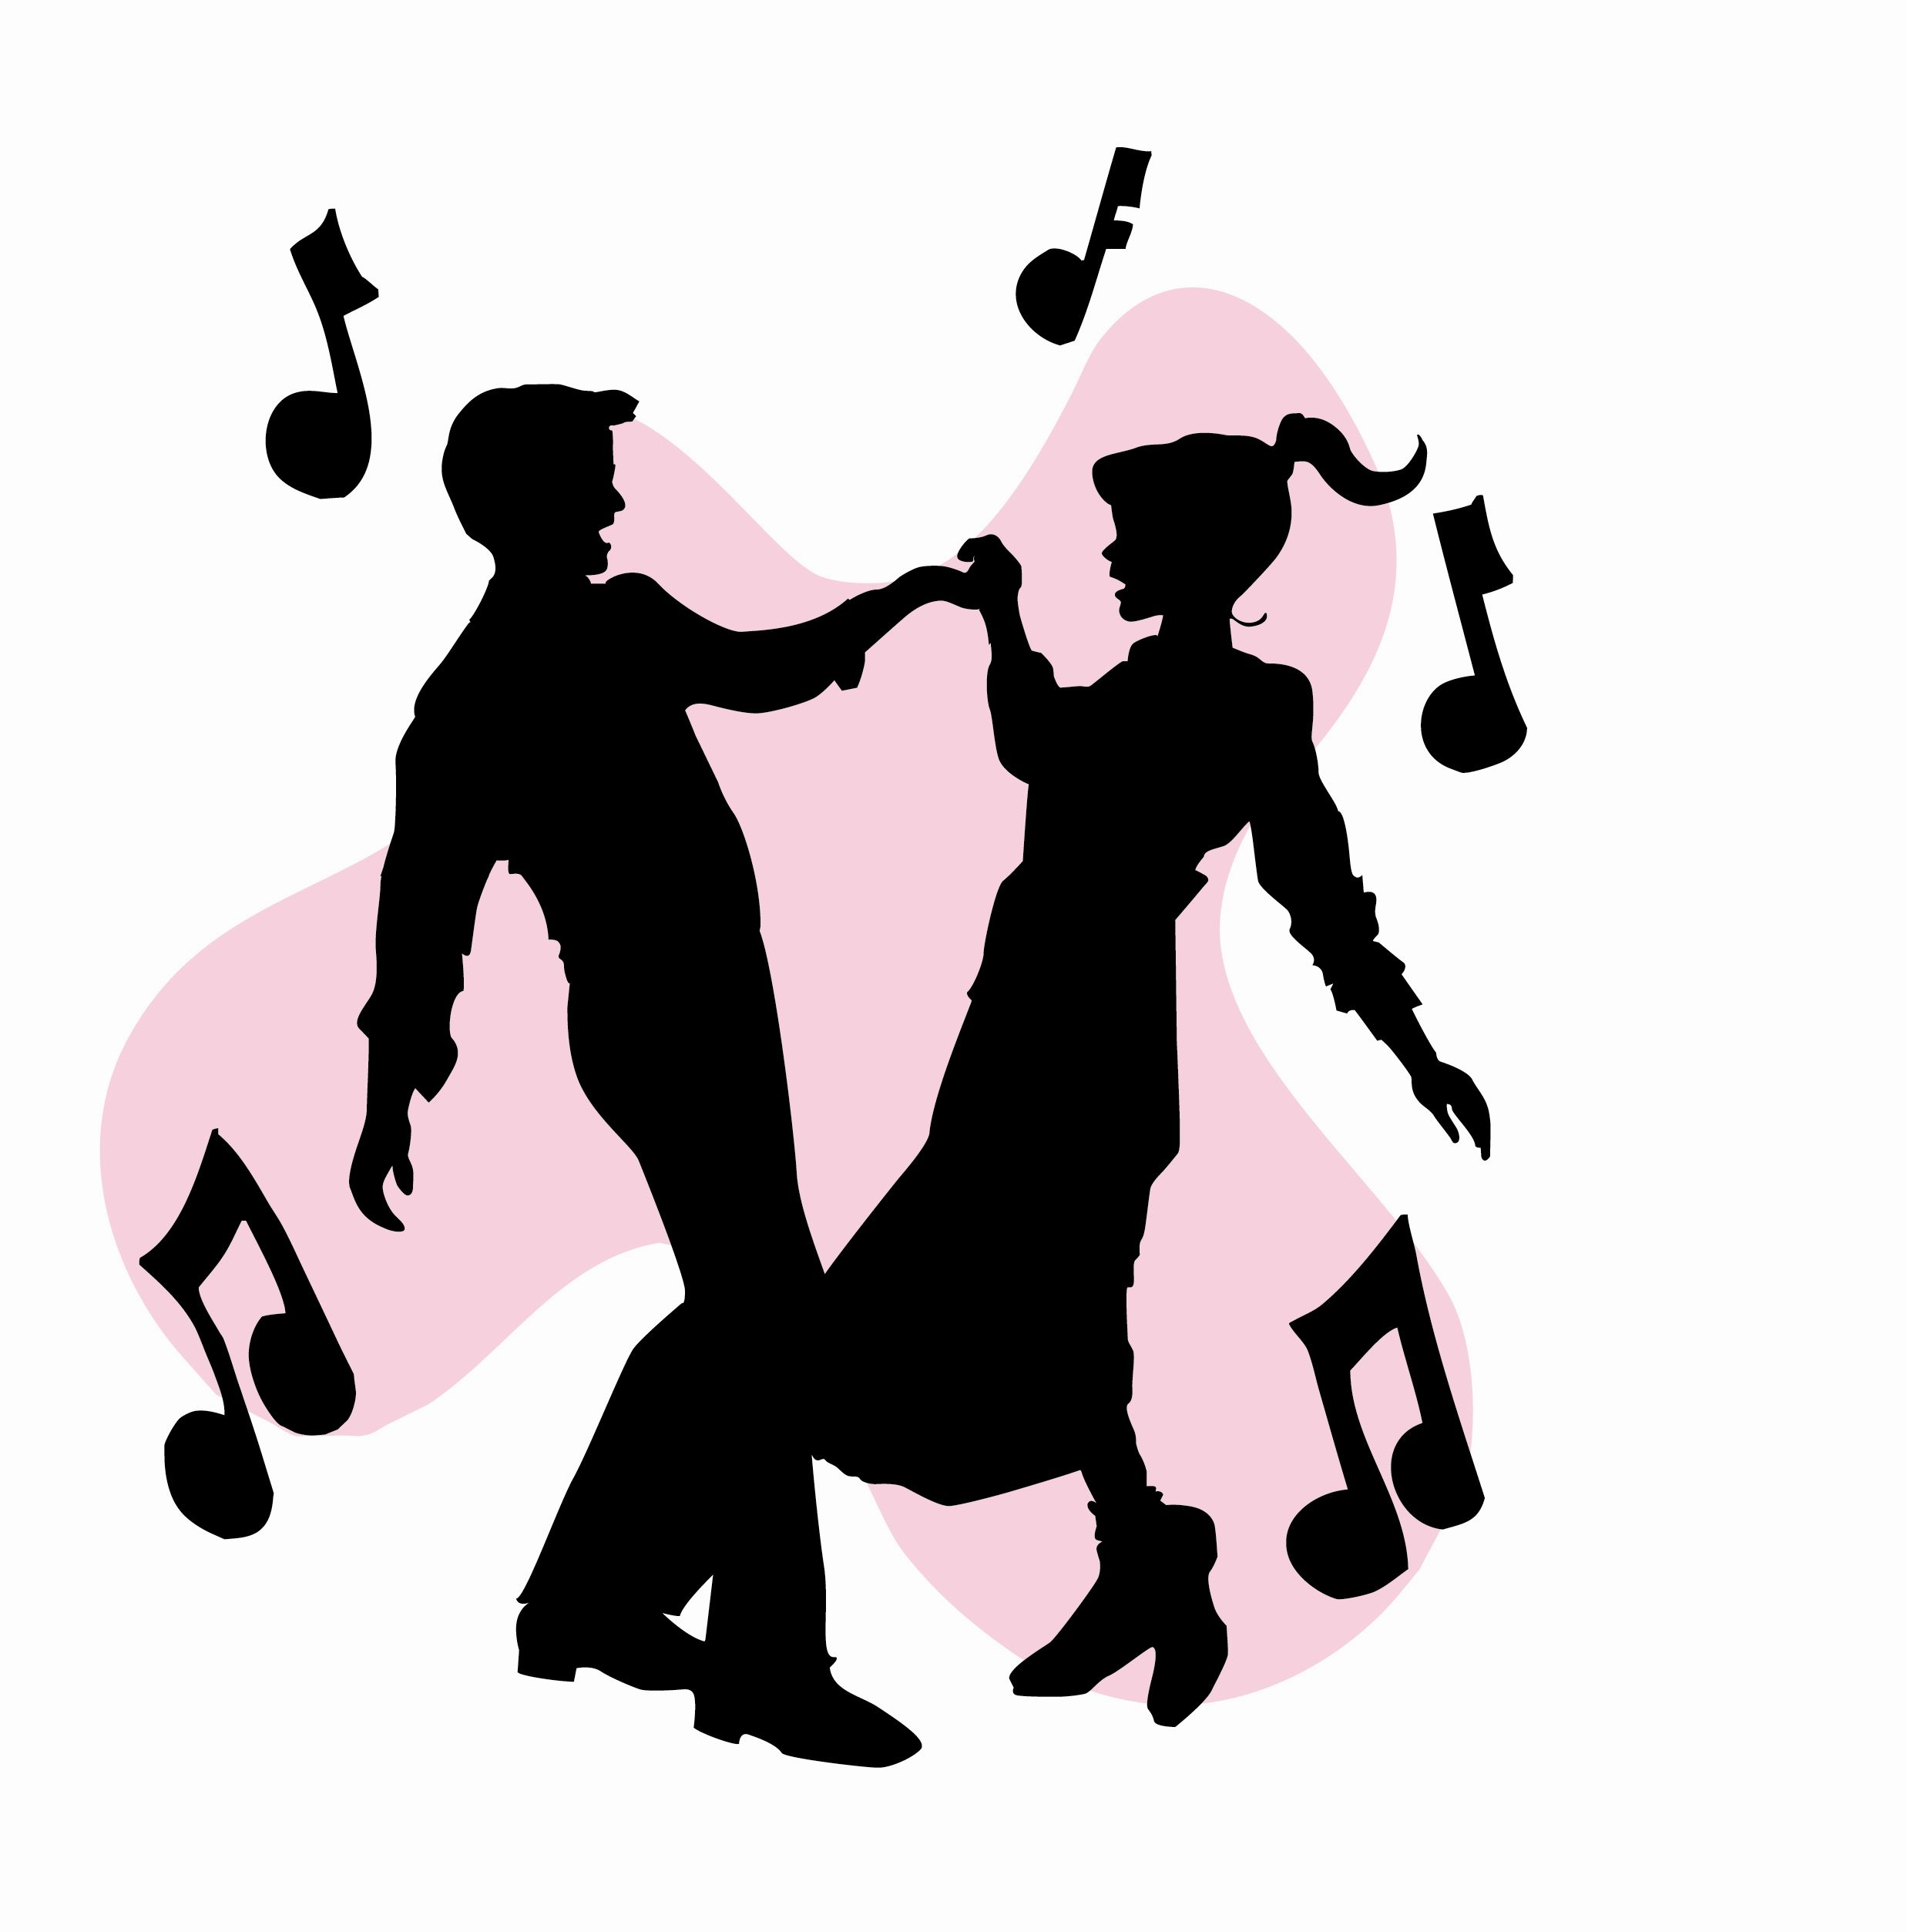 1950s dancing clipart banner transparent download 50s Sock Hop Dancers Silhouettes Clipart | Homecoming Ideas | Sock ... banner transparent download